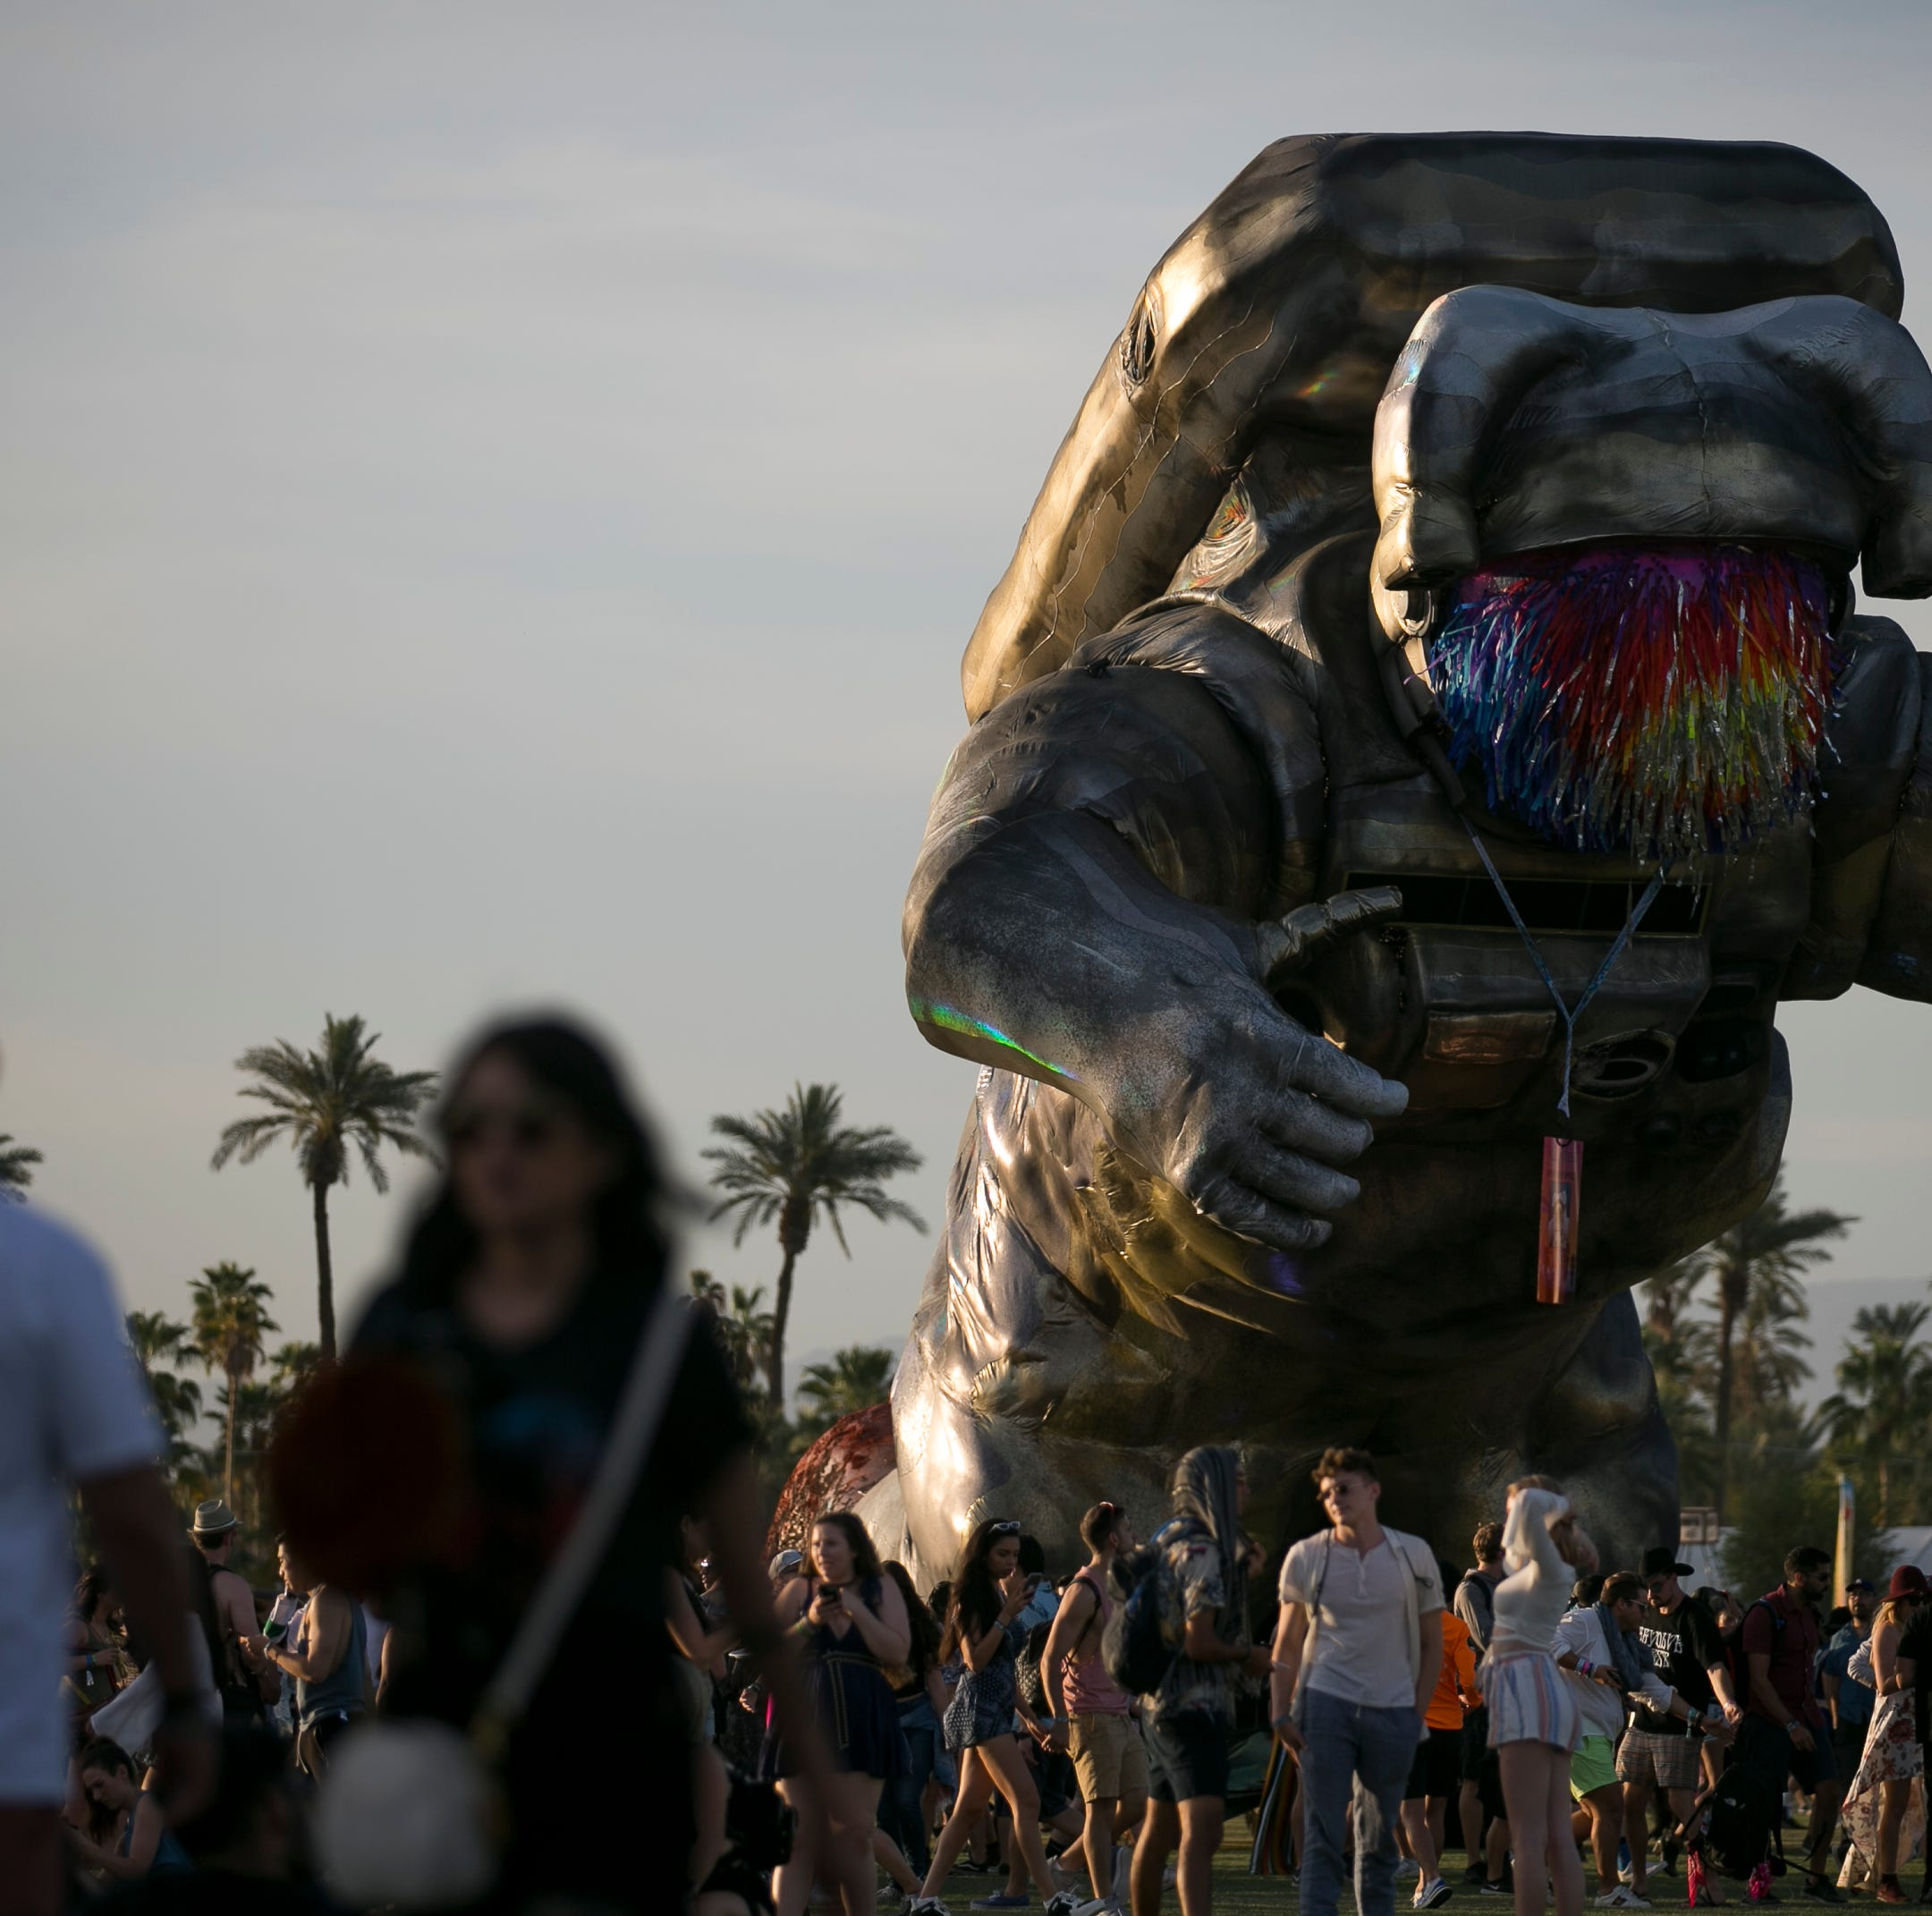 Coachella is the best thing happening in desert (and the world). Passes still available